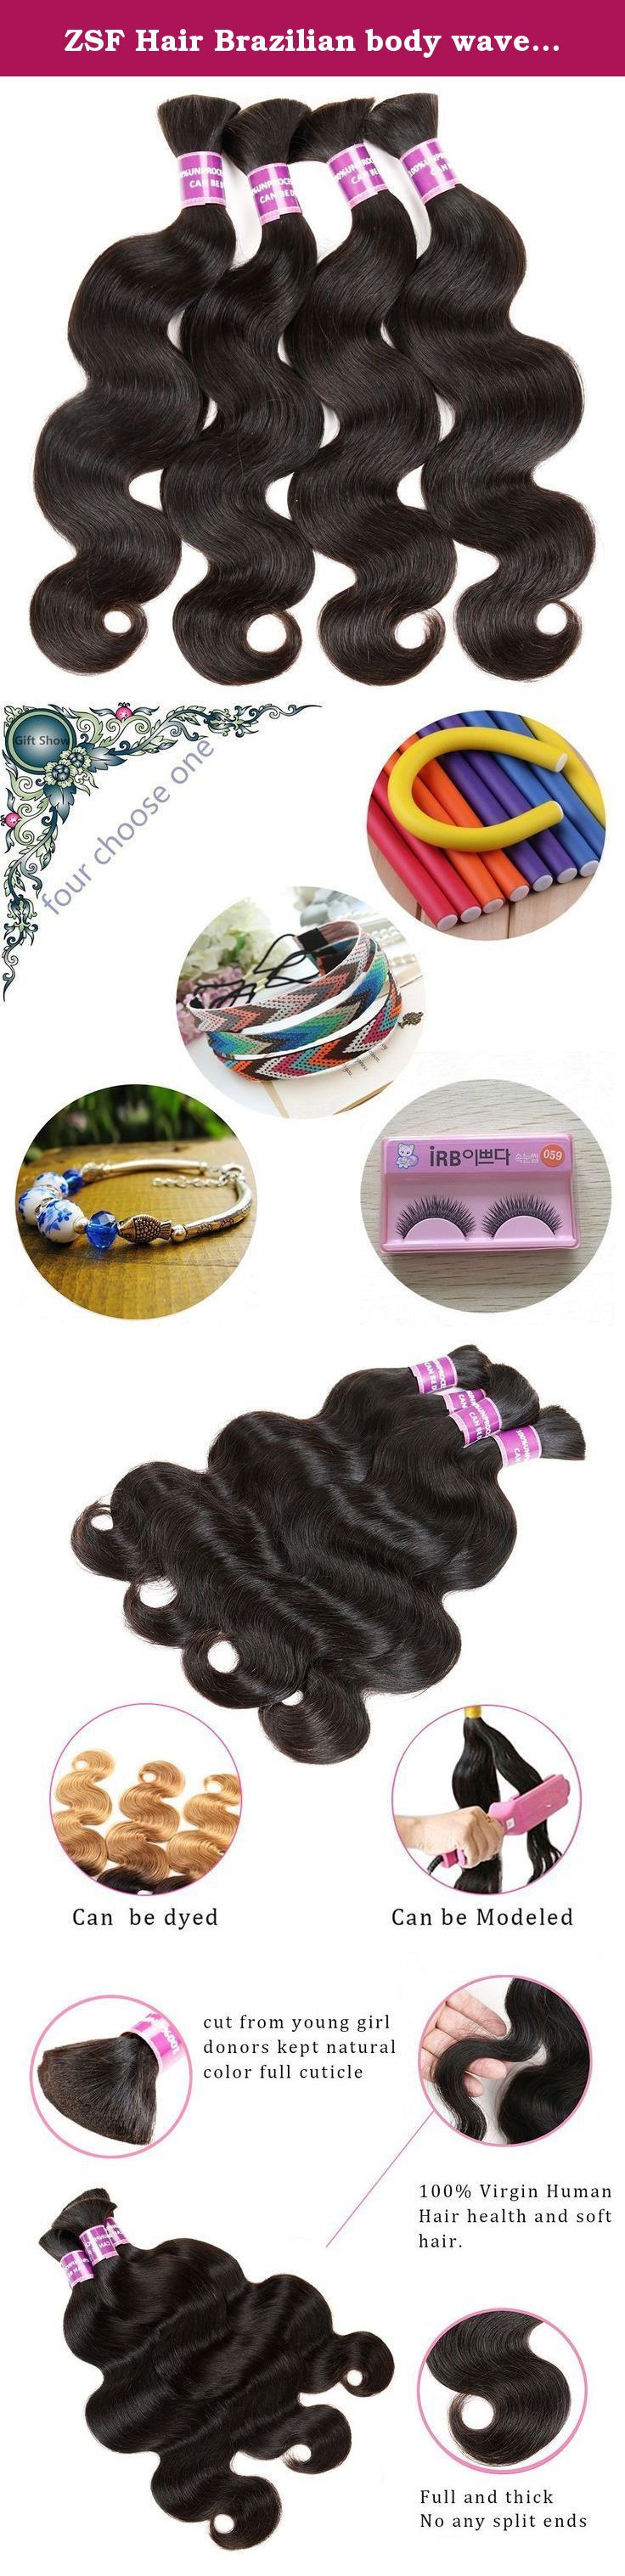 """ZSF Hair Brazilian body wave Hair bulk Brazilian human hair for braiding bulk no attachment 4pcs Brazilian braid hair in human bulk hair Mix Length 20""""20""""20""""20"""". ZSF Hair Specifications: 1)Style: Brazilian Body Wave Hair Bulk 2)Material: 100% virgin human hair 3)Process: none 4)Hair Length:We measure the length of hair when the hair be stretched to straight. 5)Weight: 95-100g/bundle 6)Grade: AAAAAAAA 7)Related Style:Curly 、Loose Wave 、Natural wave、 Straight, etc, or customized as your…"""